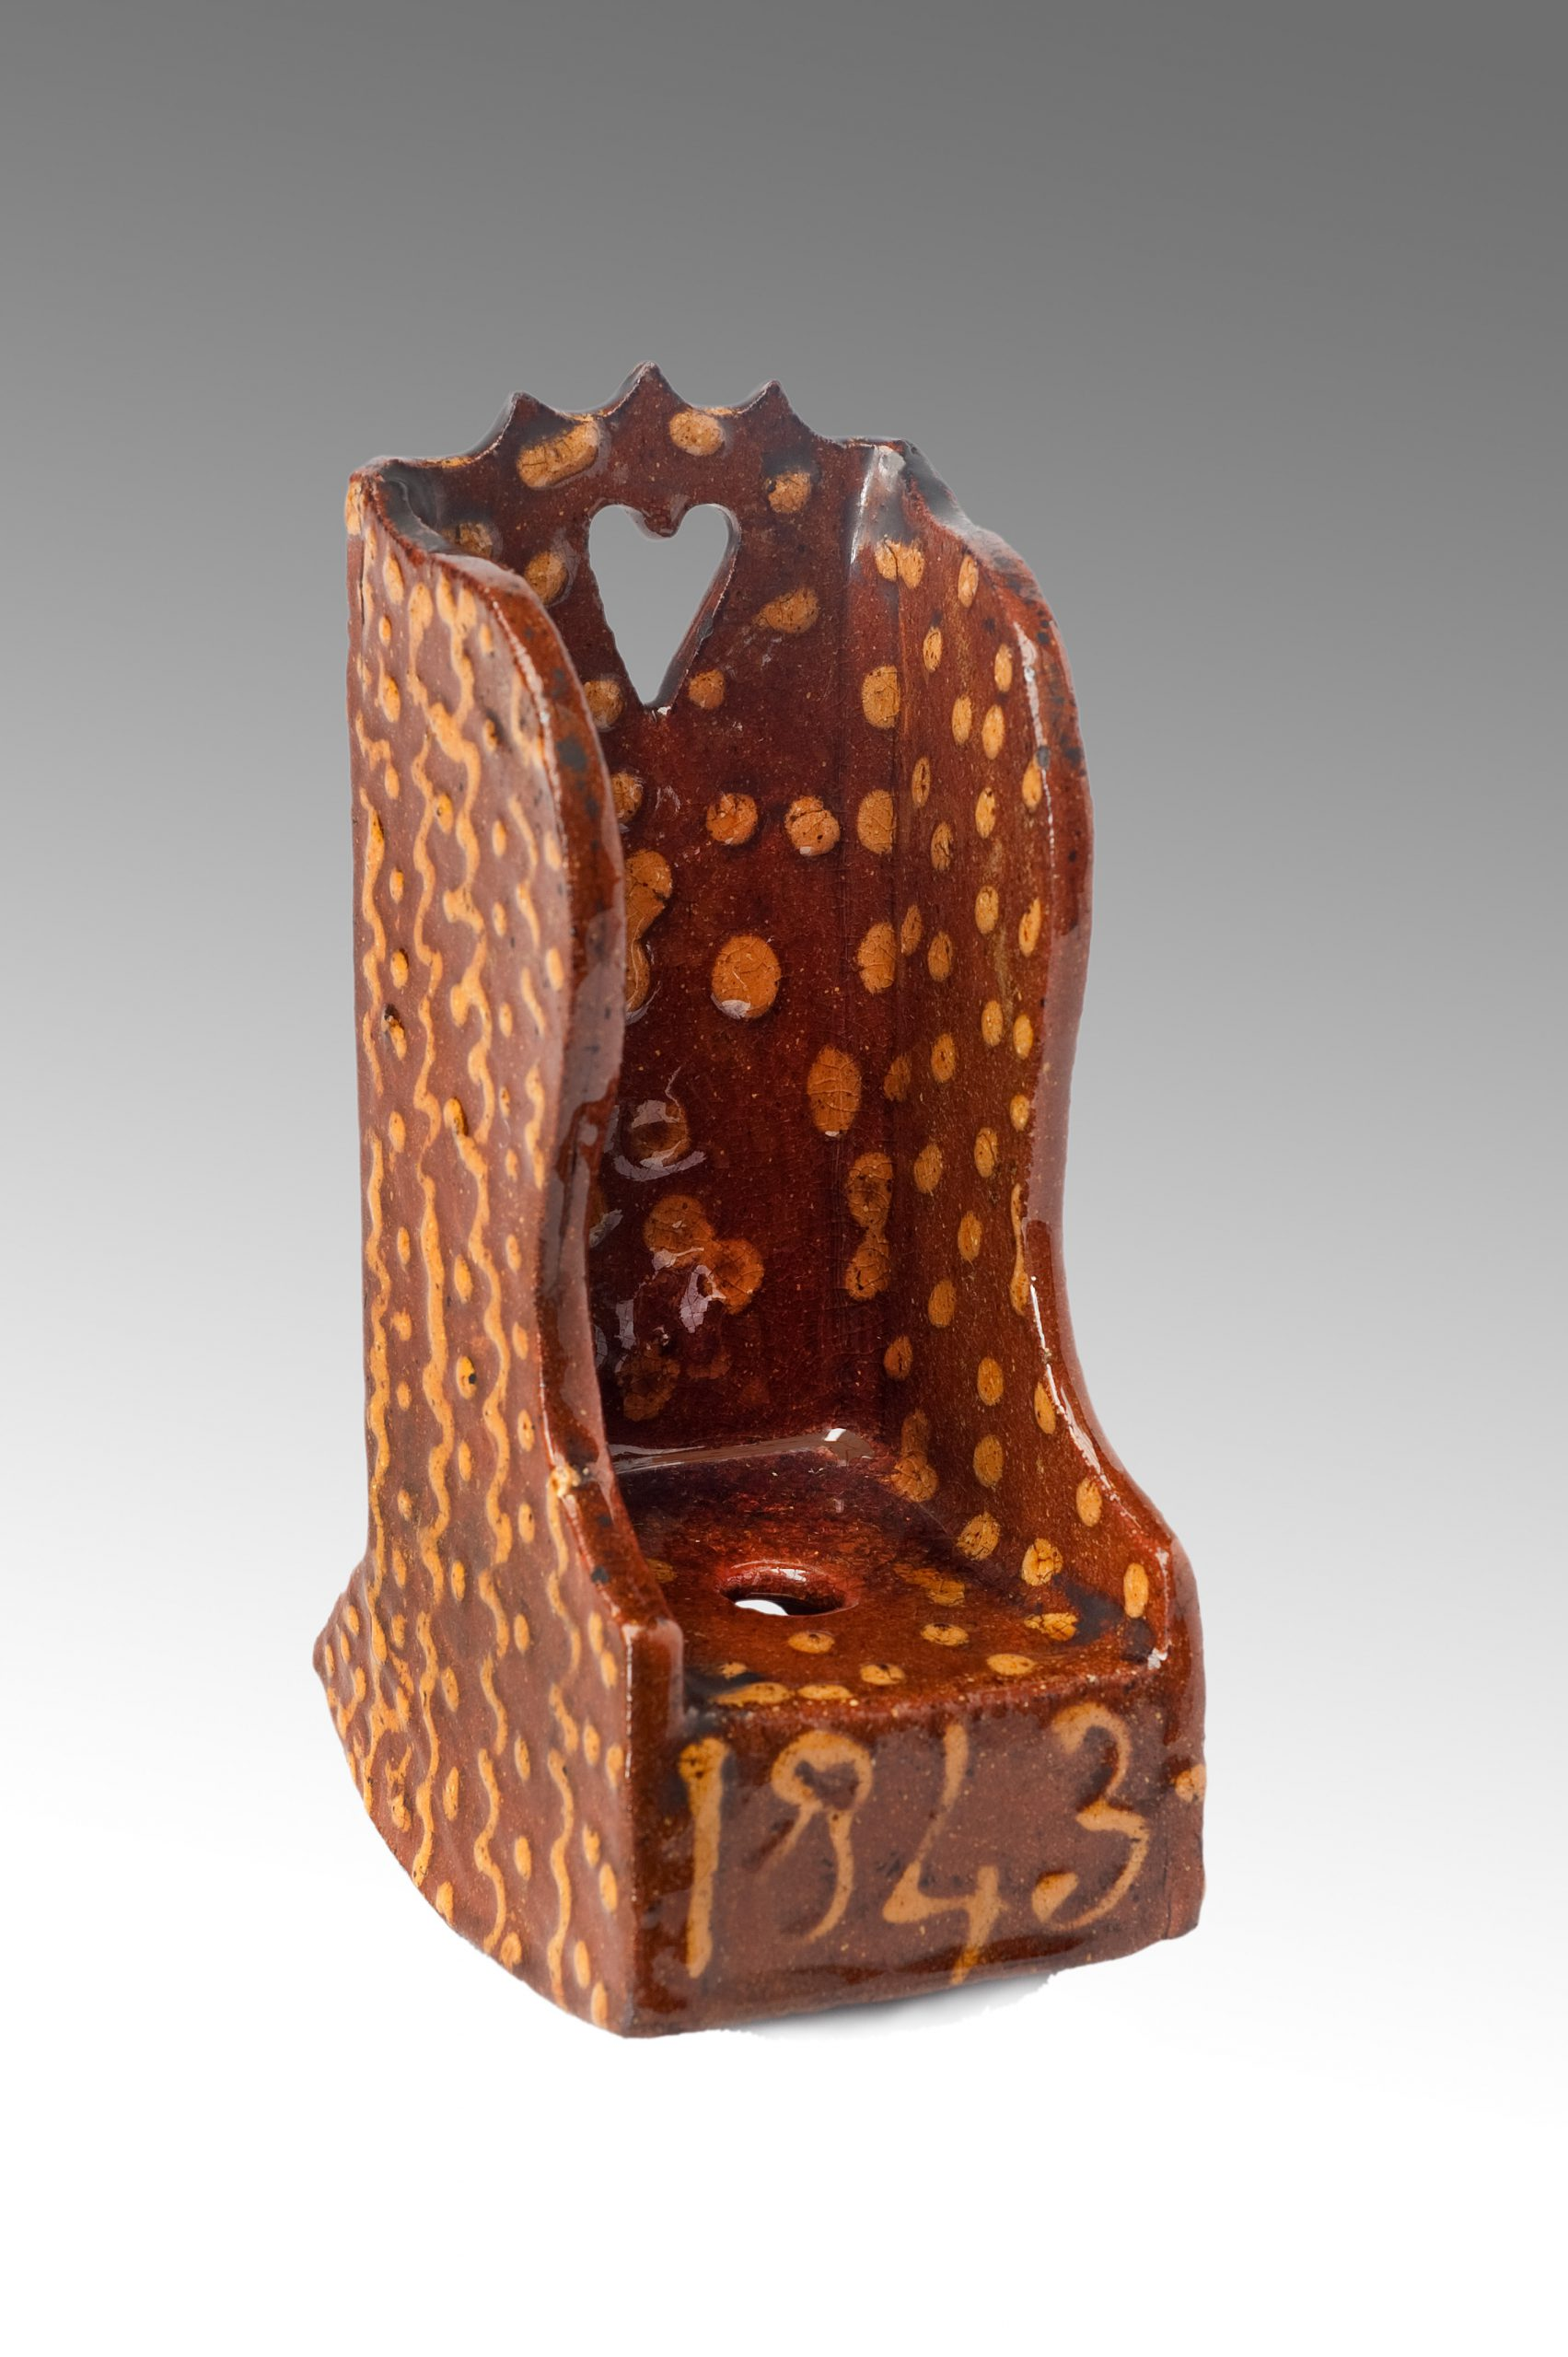 Image of A Superb Slip-ware Rocking Chair in completely untouched condition